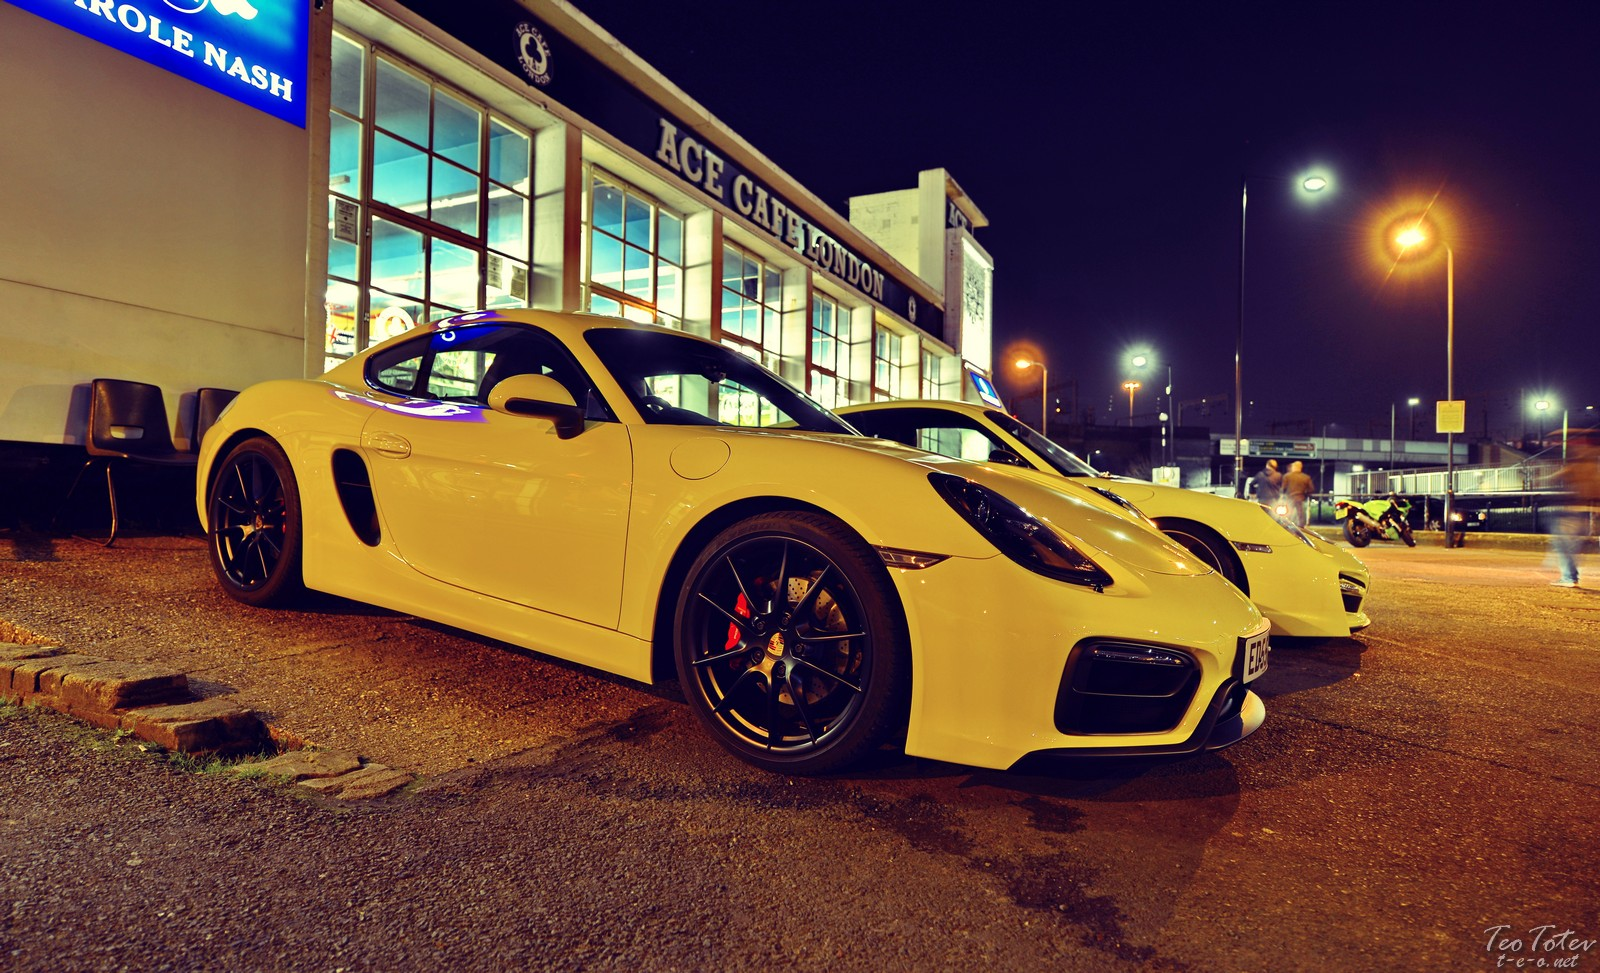 Yellow Porsche Ace Cafe London